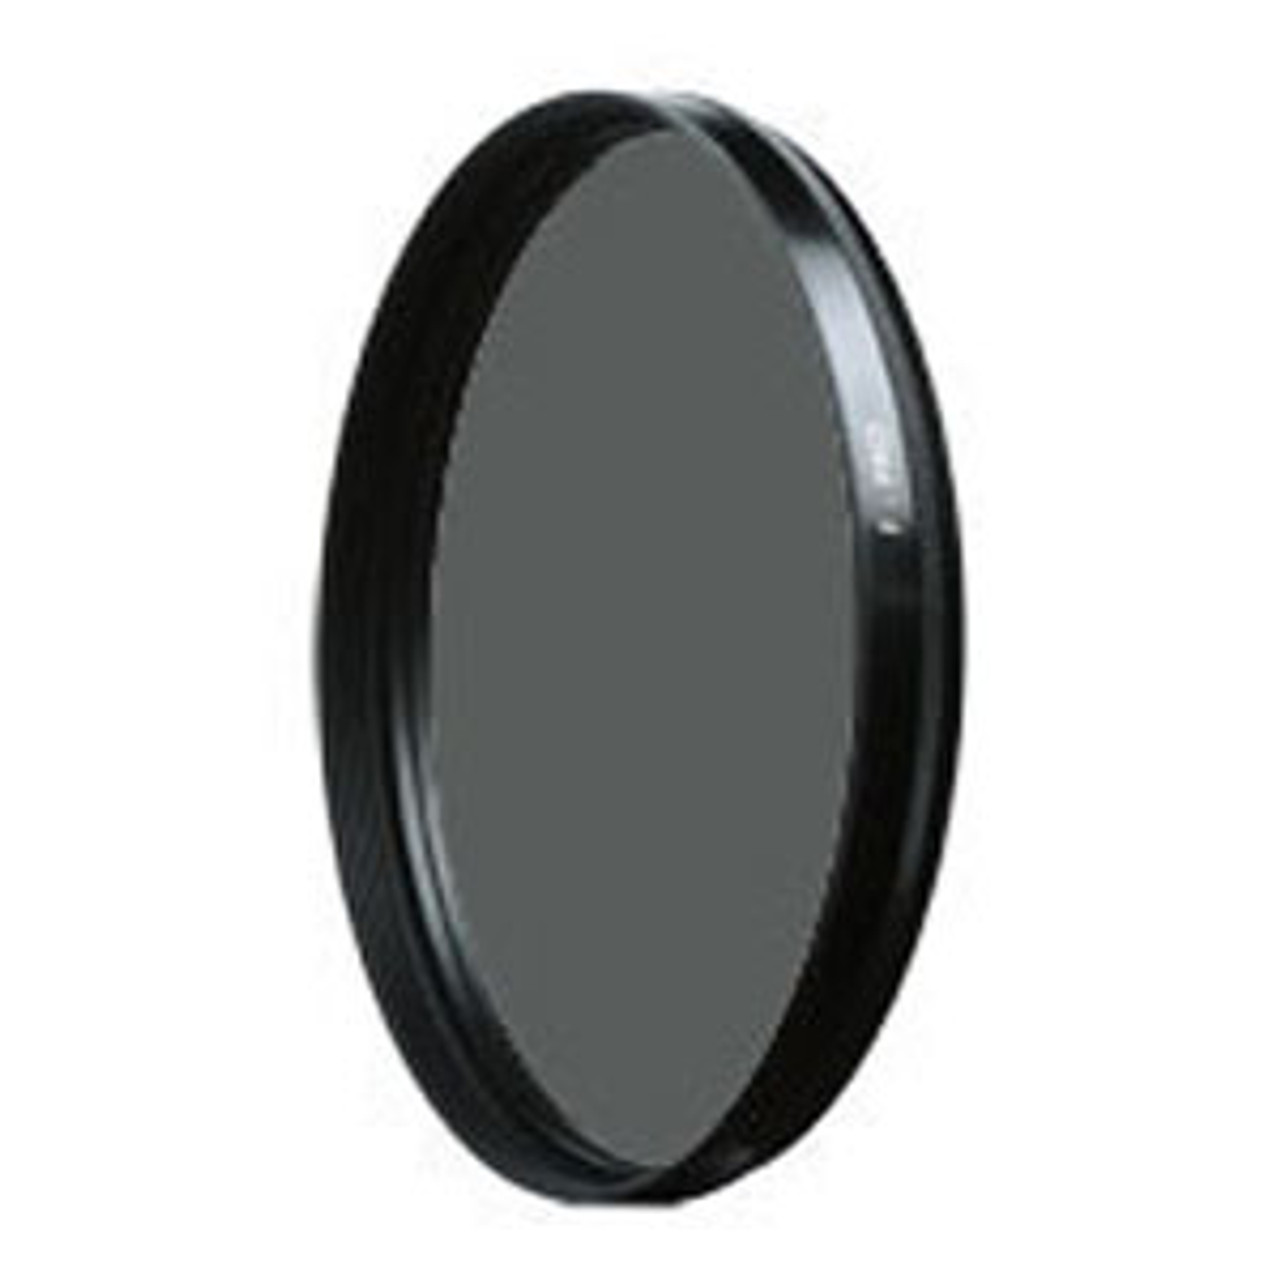 B+W 72mm ND 1.8x 64x Coated (106) Filter